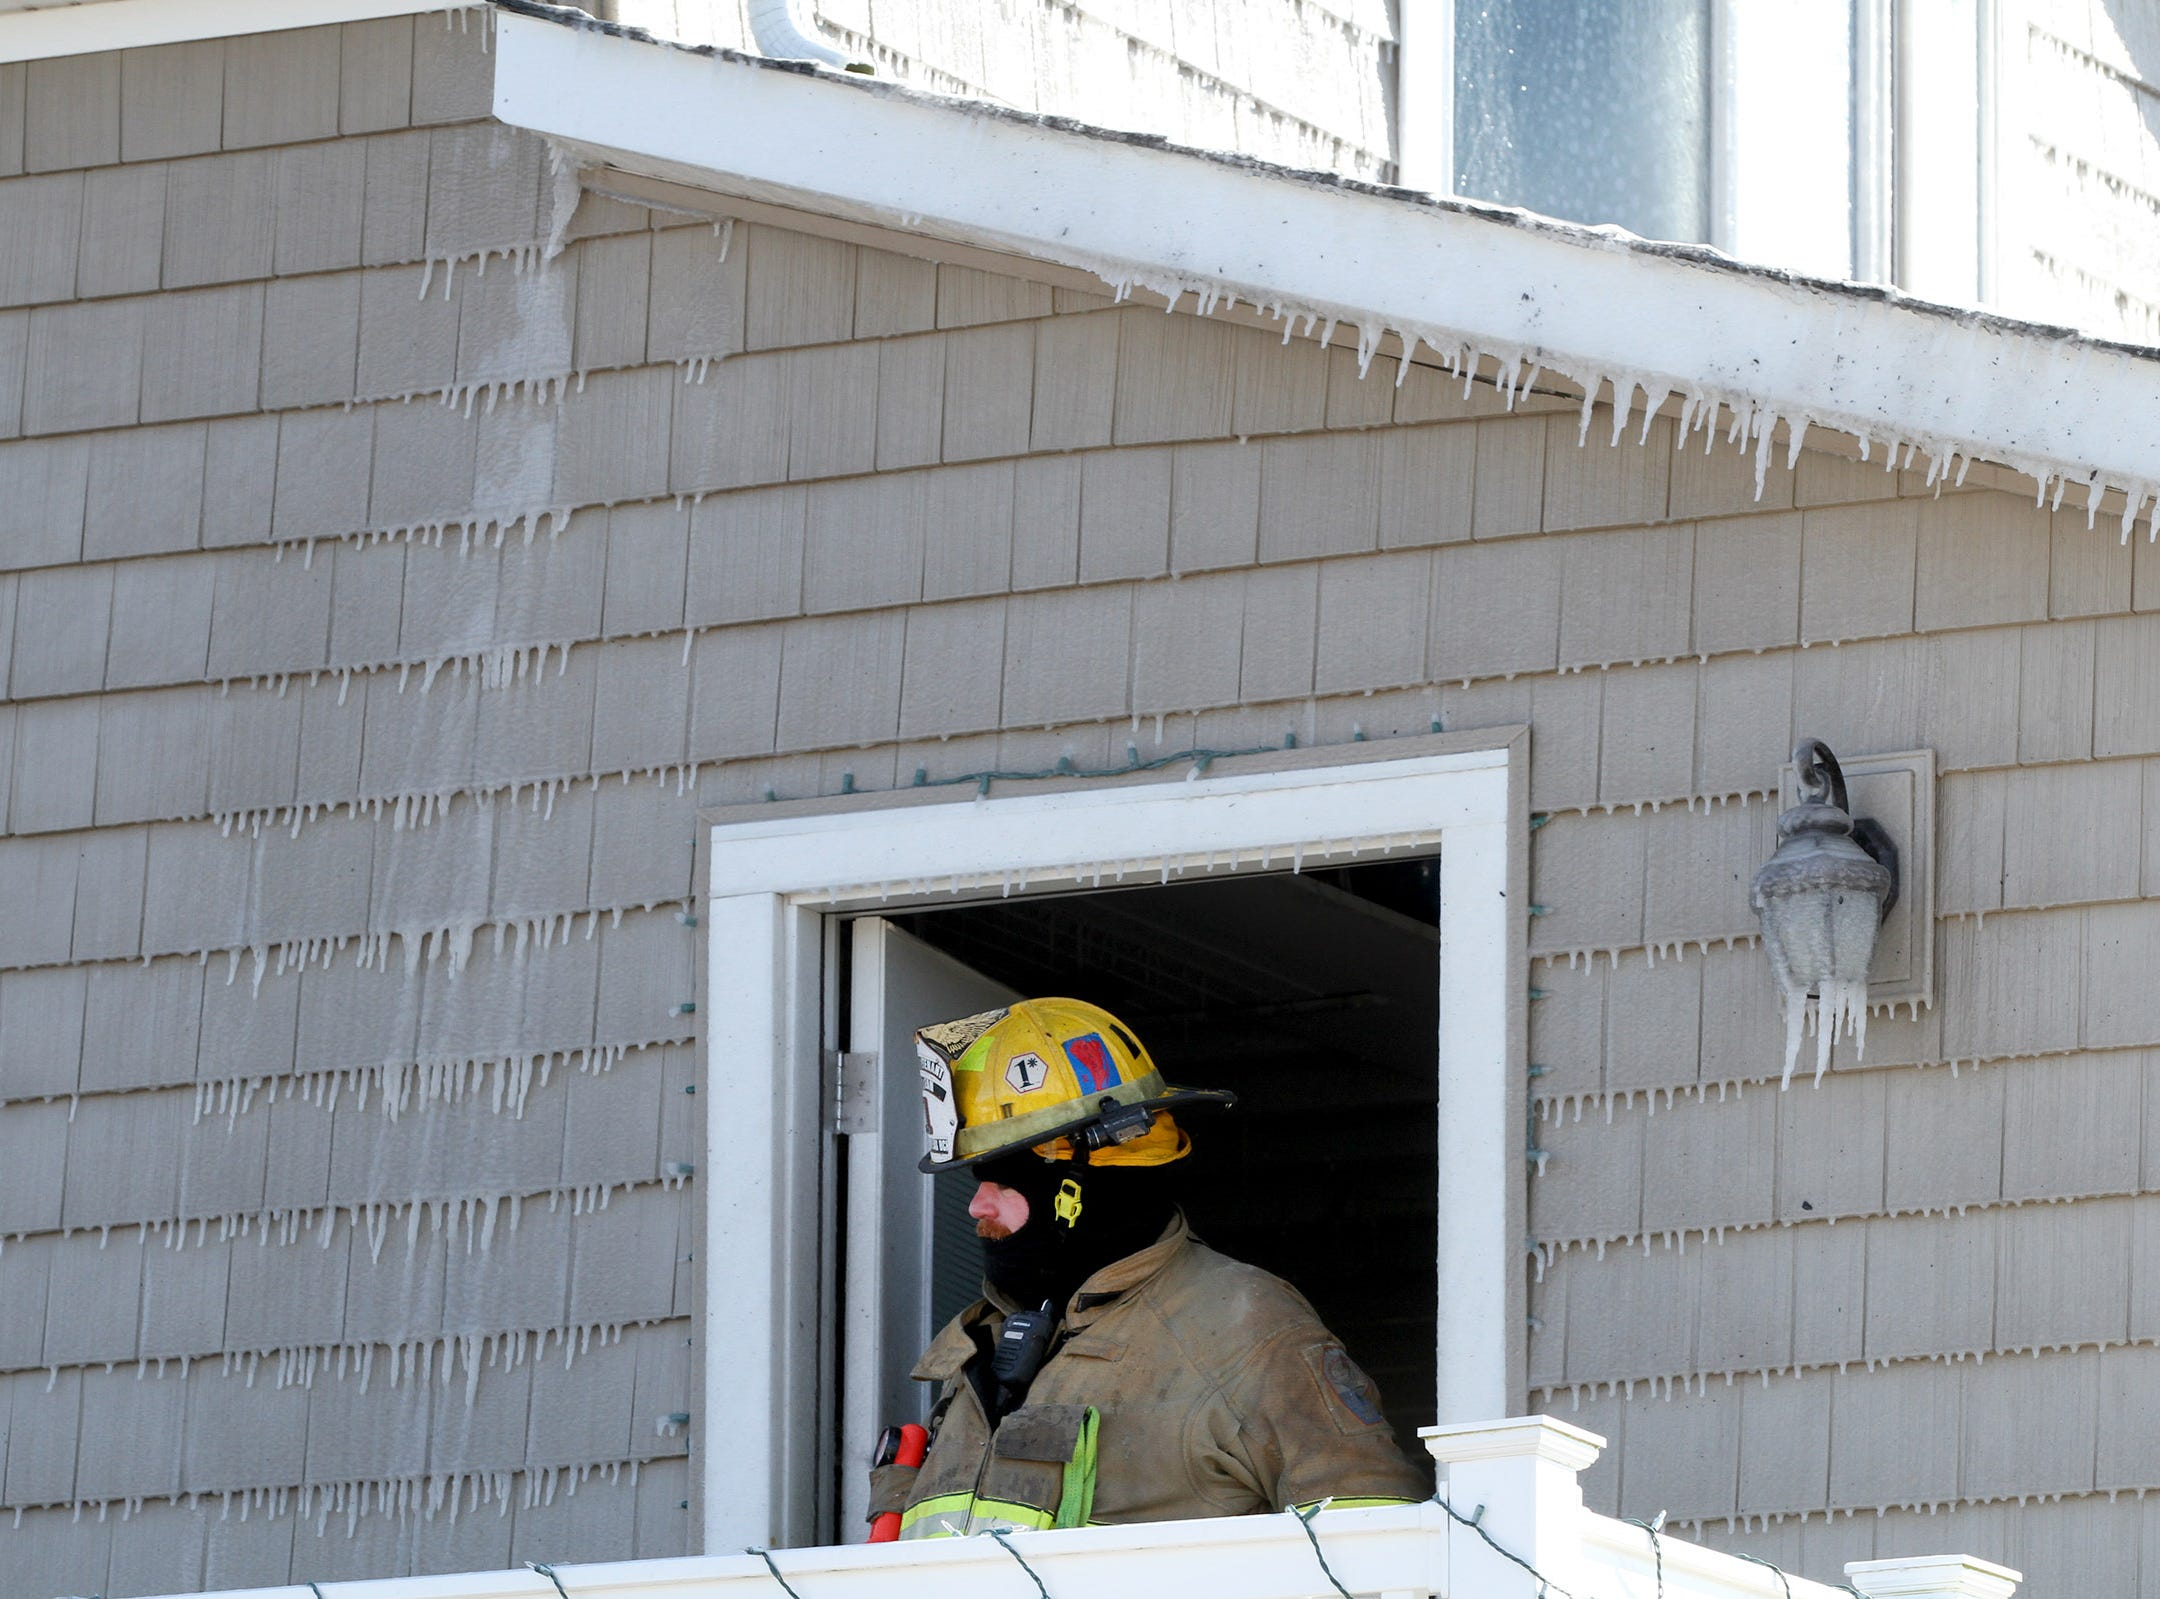 A firefighter exits a residence next to Point Lobster Company in Point Pleasant Beac Monday afternoon, January 21, 2019, after a fire was extinguished there.